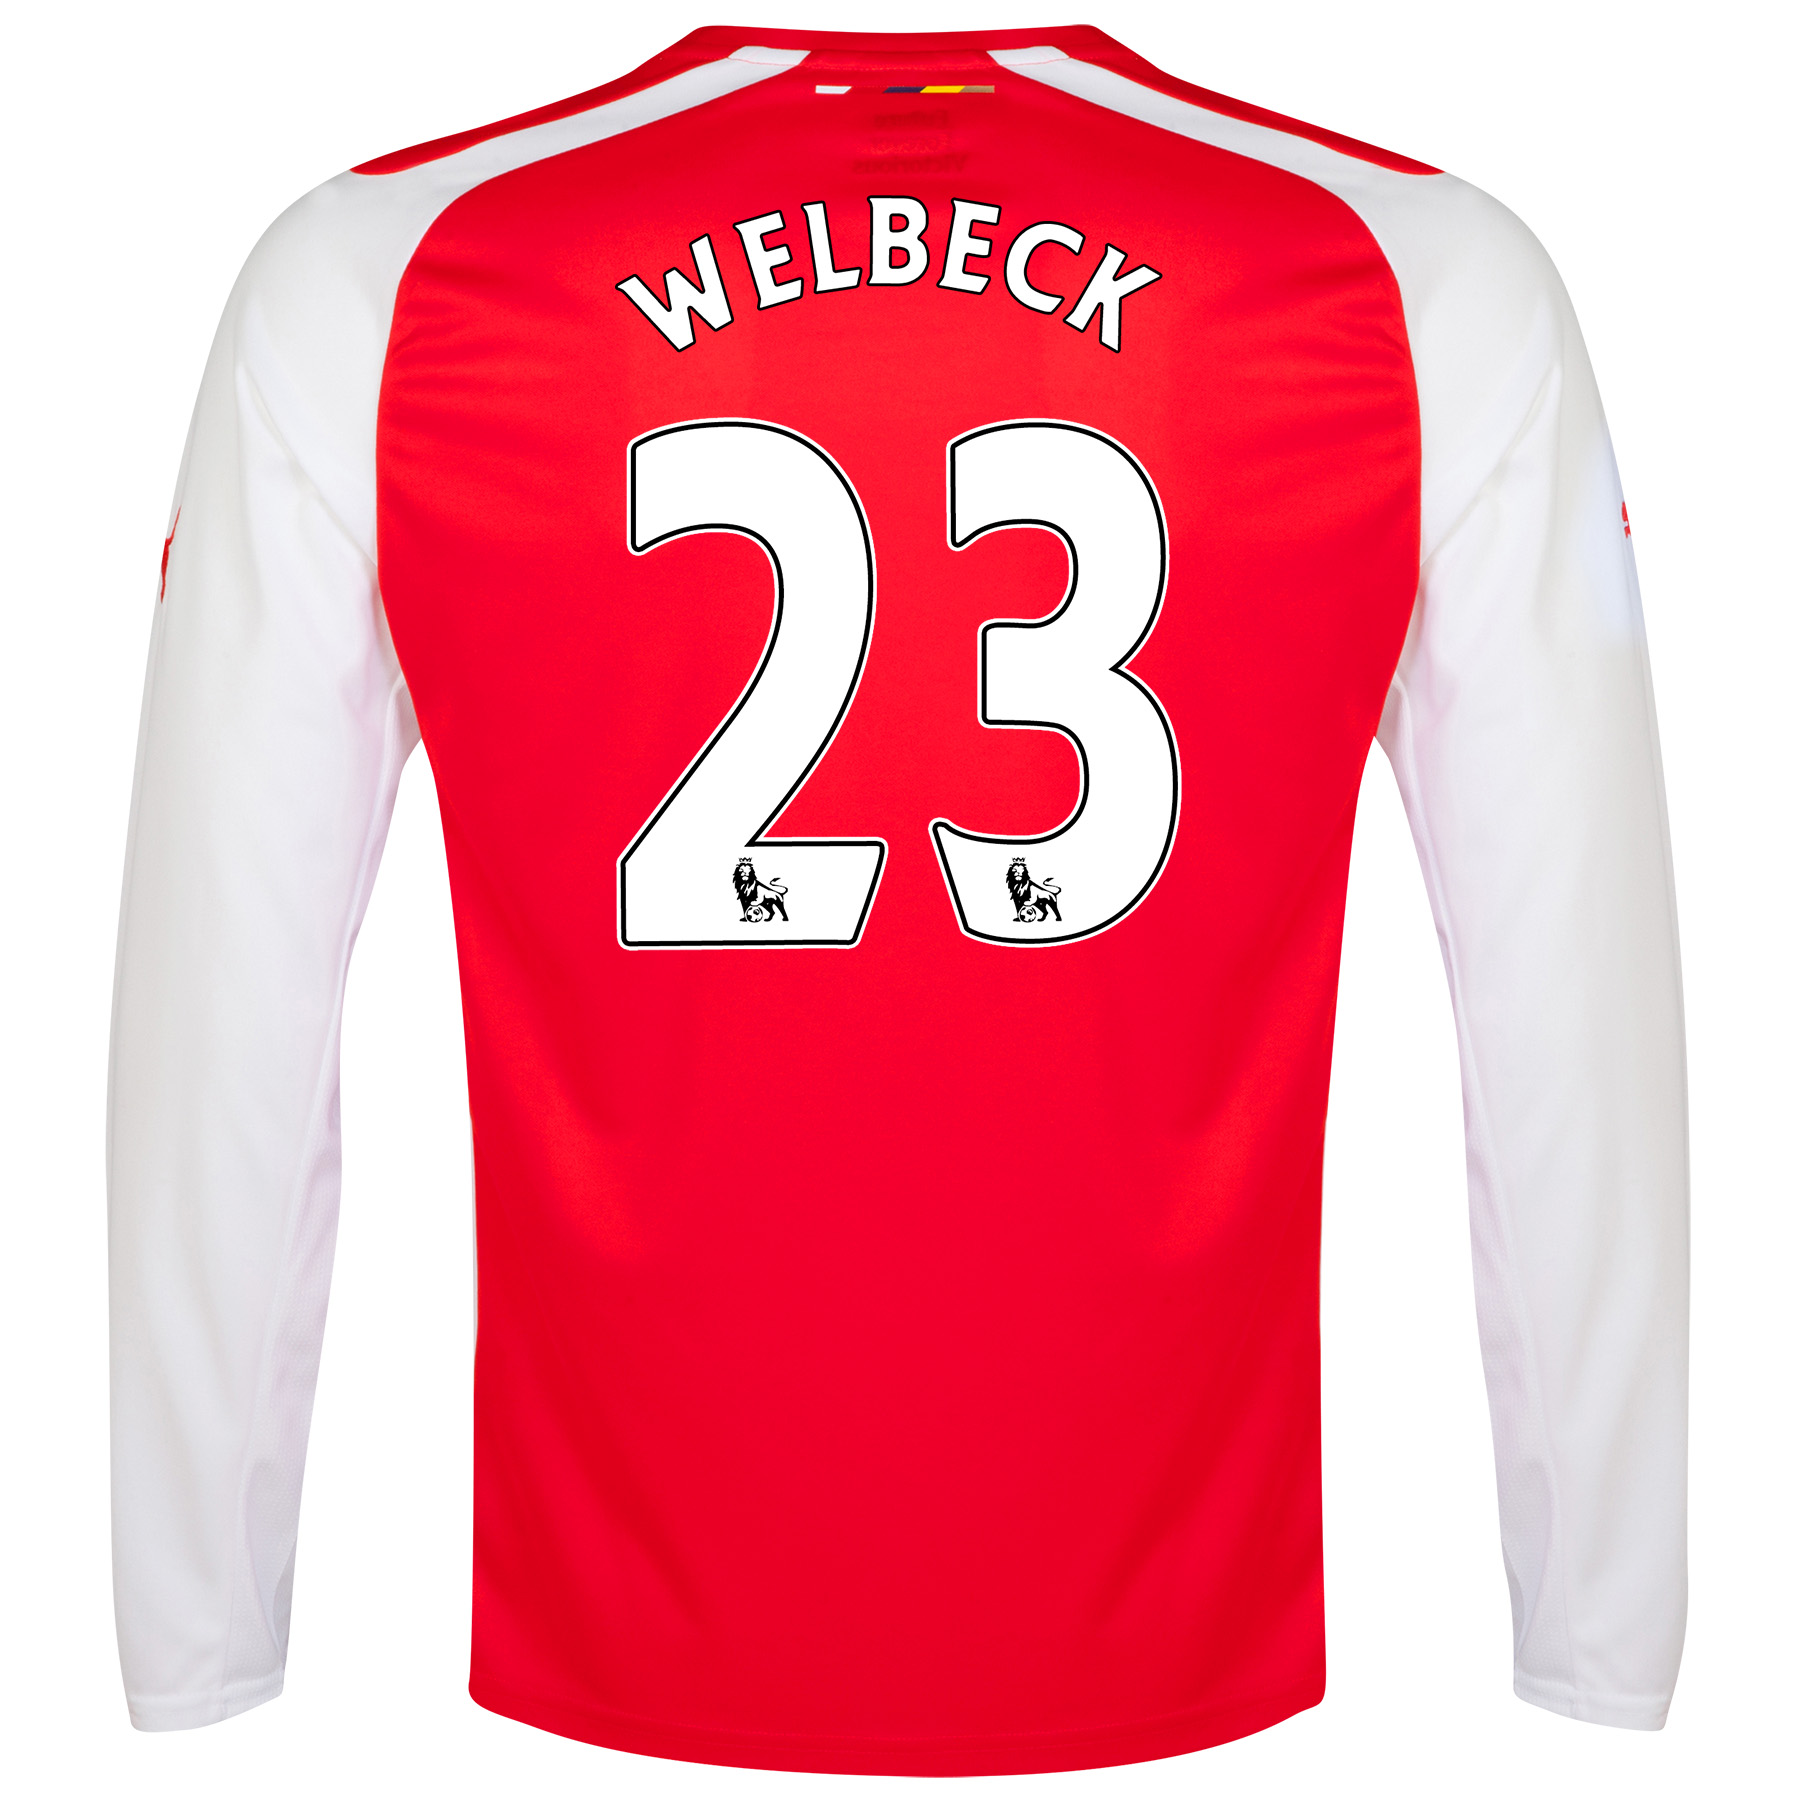 Arsenal Home Shirt 2014/15 - Long Sleeve - Kids with Welbeck 23 printing